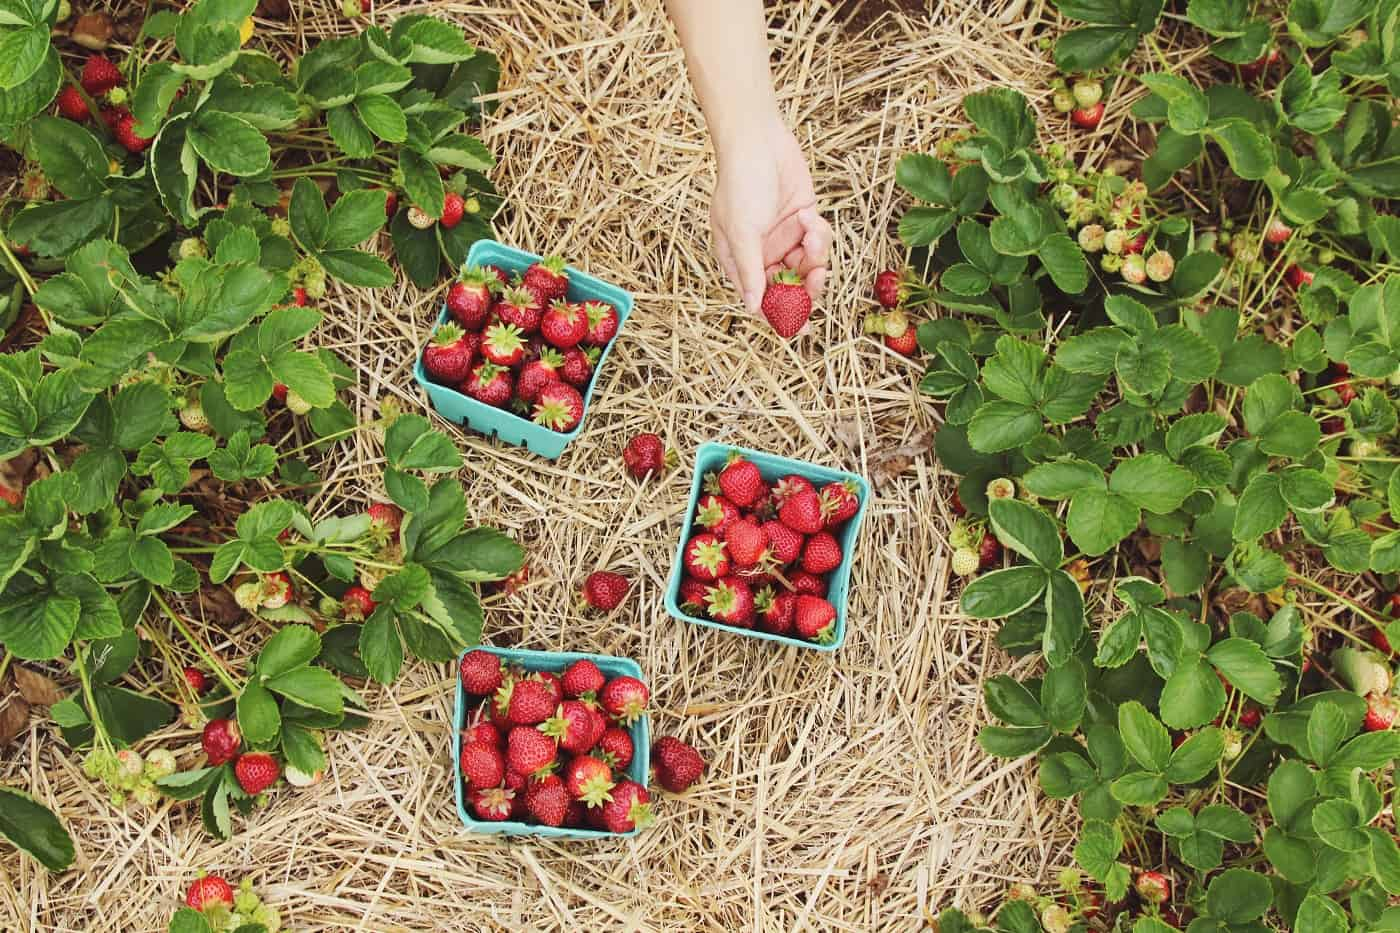 Picked strawberries in garden - Reduce that carbon footprint